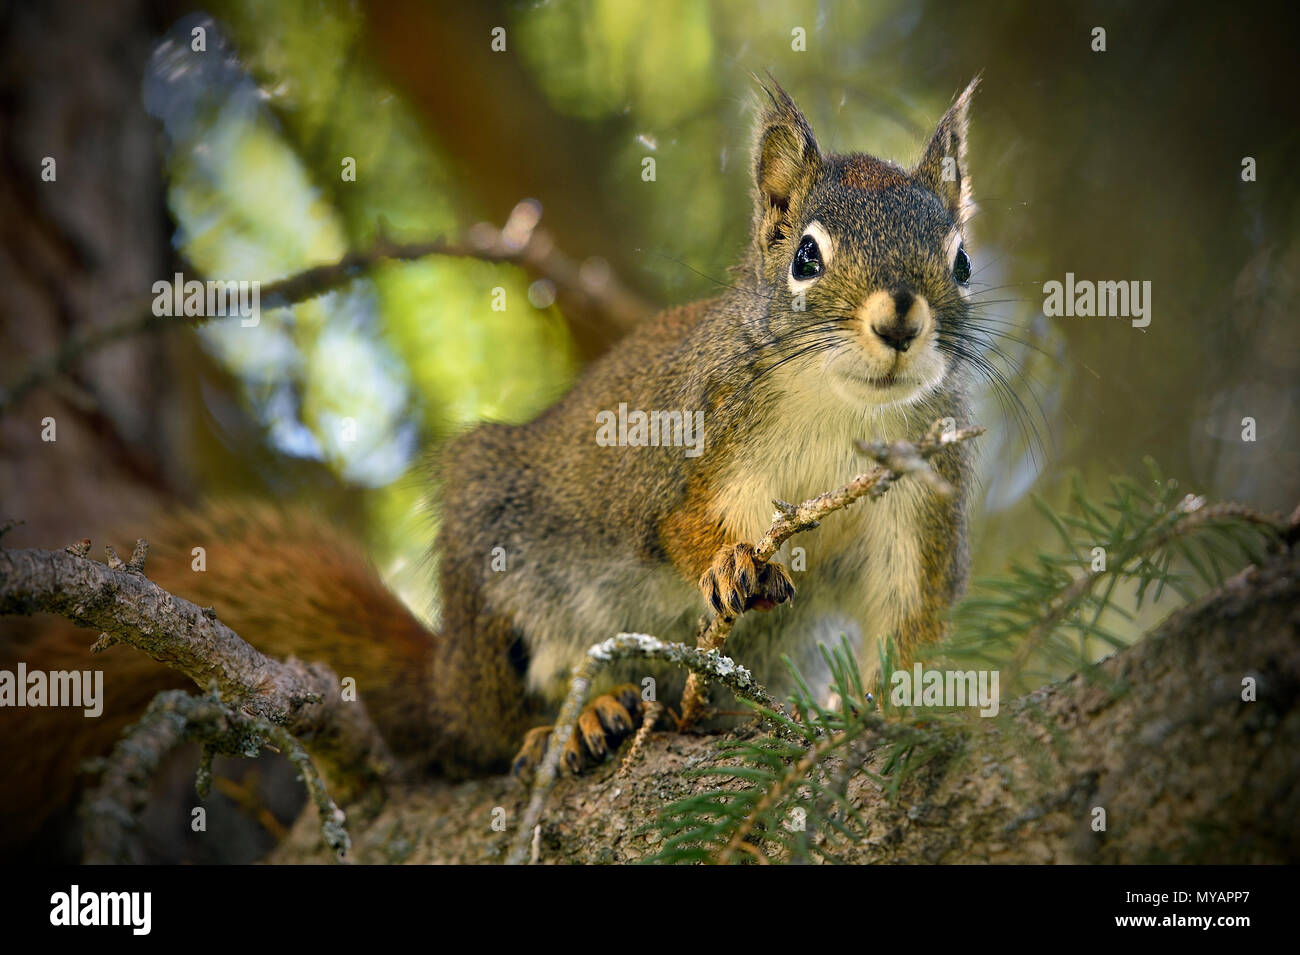 A close up image of a red squirrel 'Tamiasciurus hudsonicus'; sitting high in his tree looking down - Stock Image